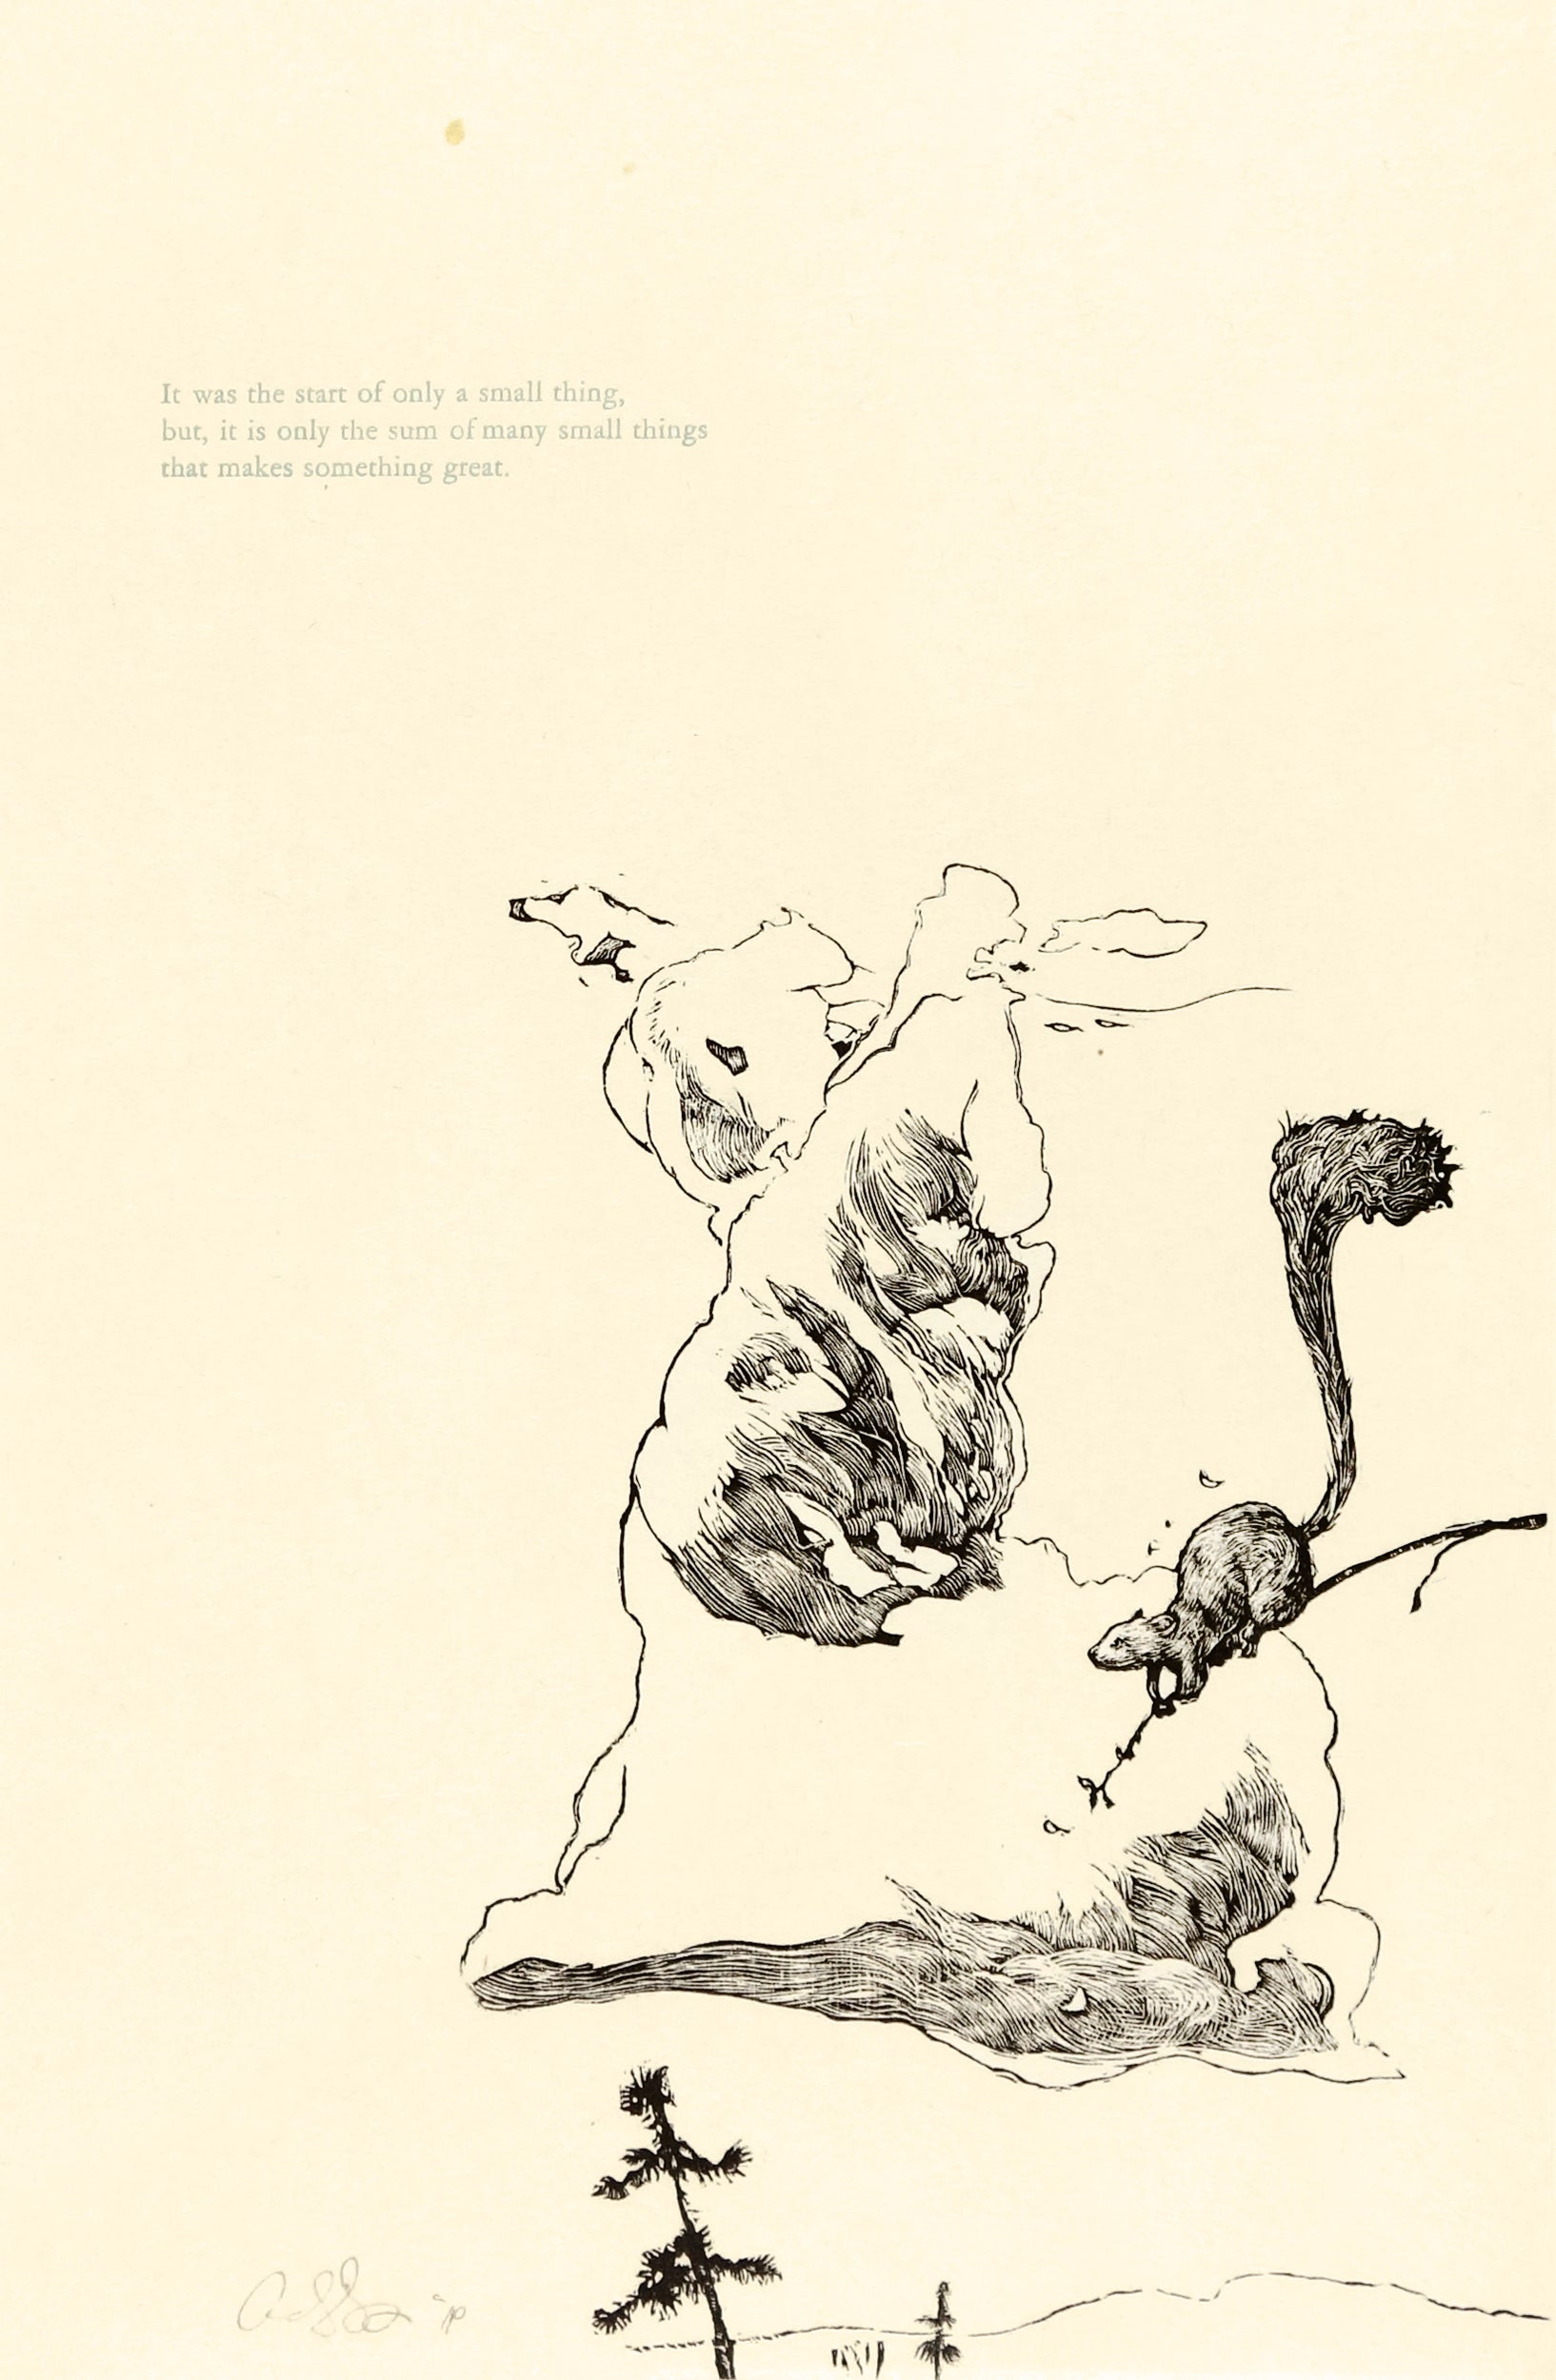 Black image on cream paper of a squirrell